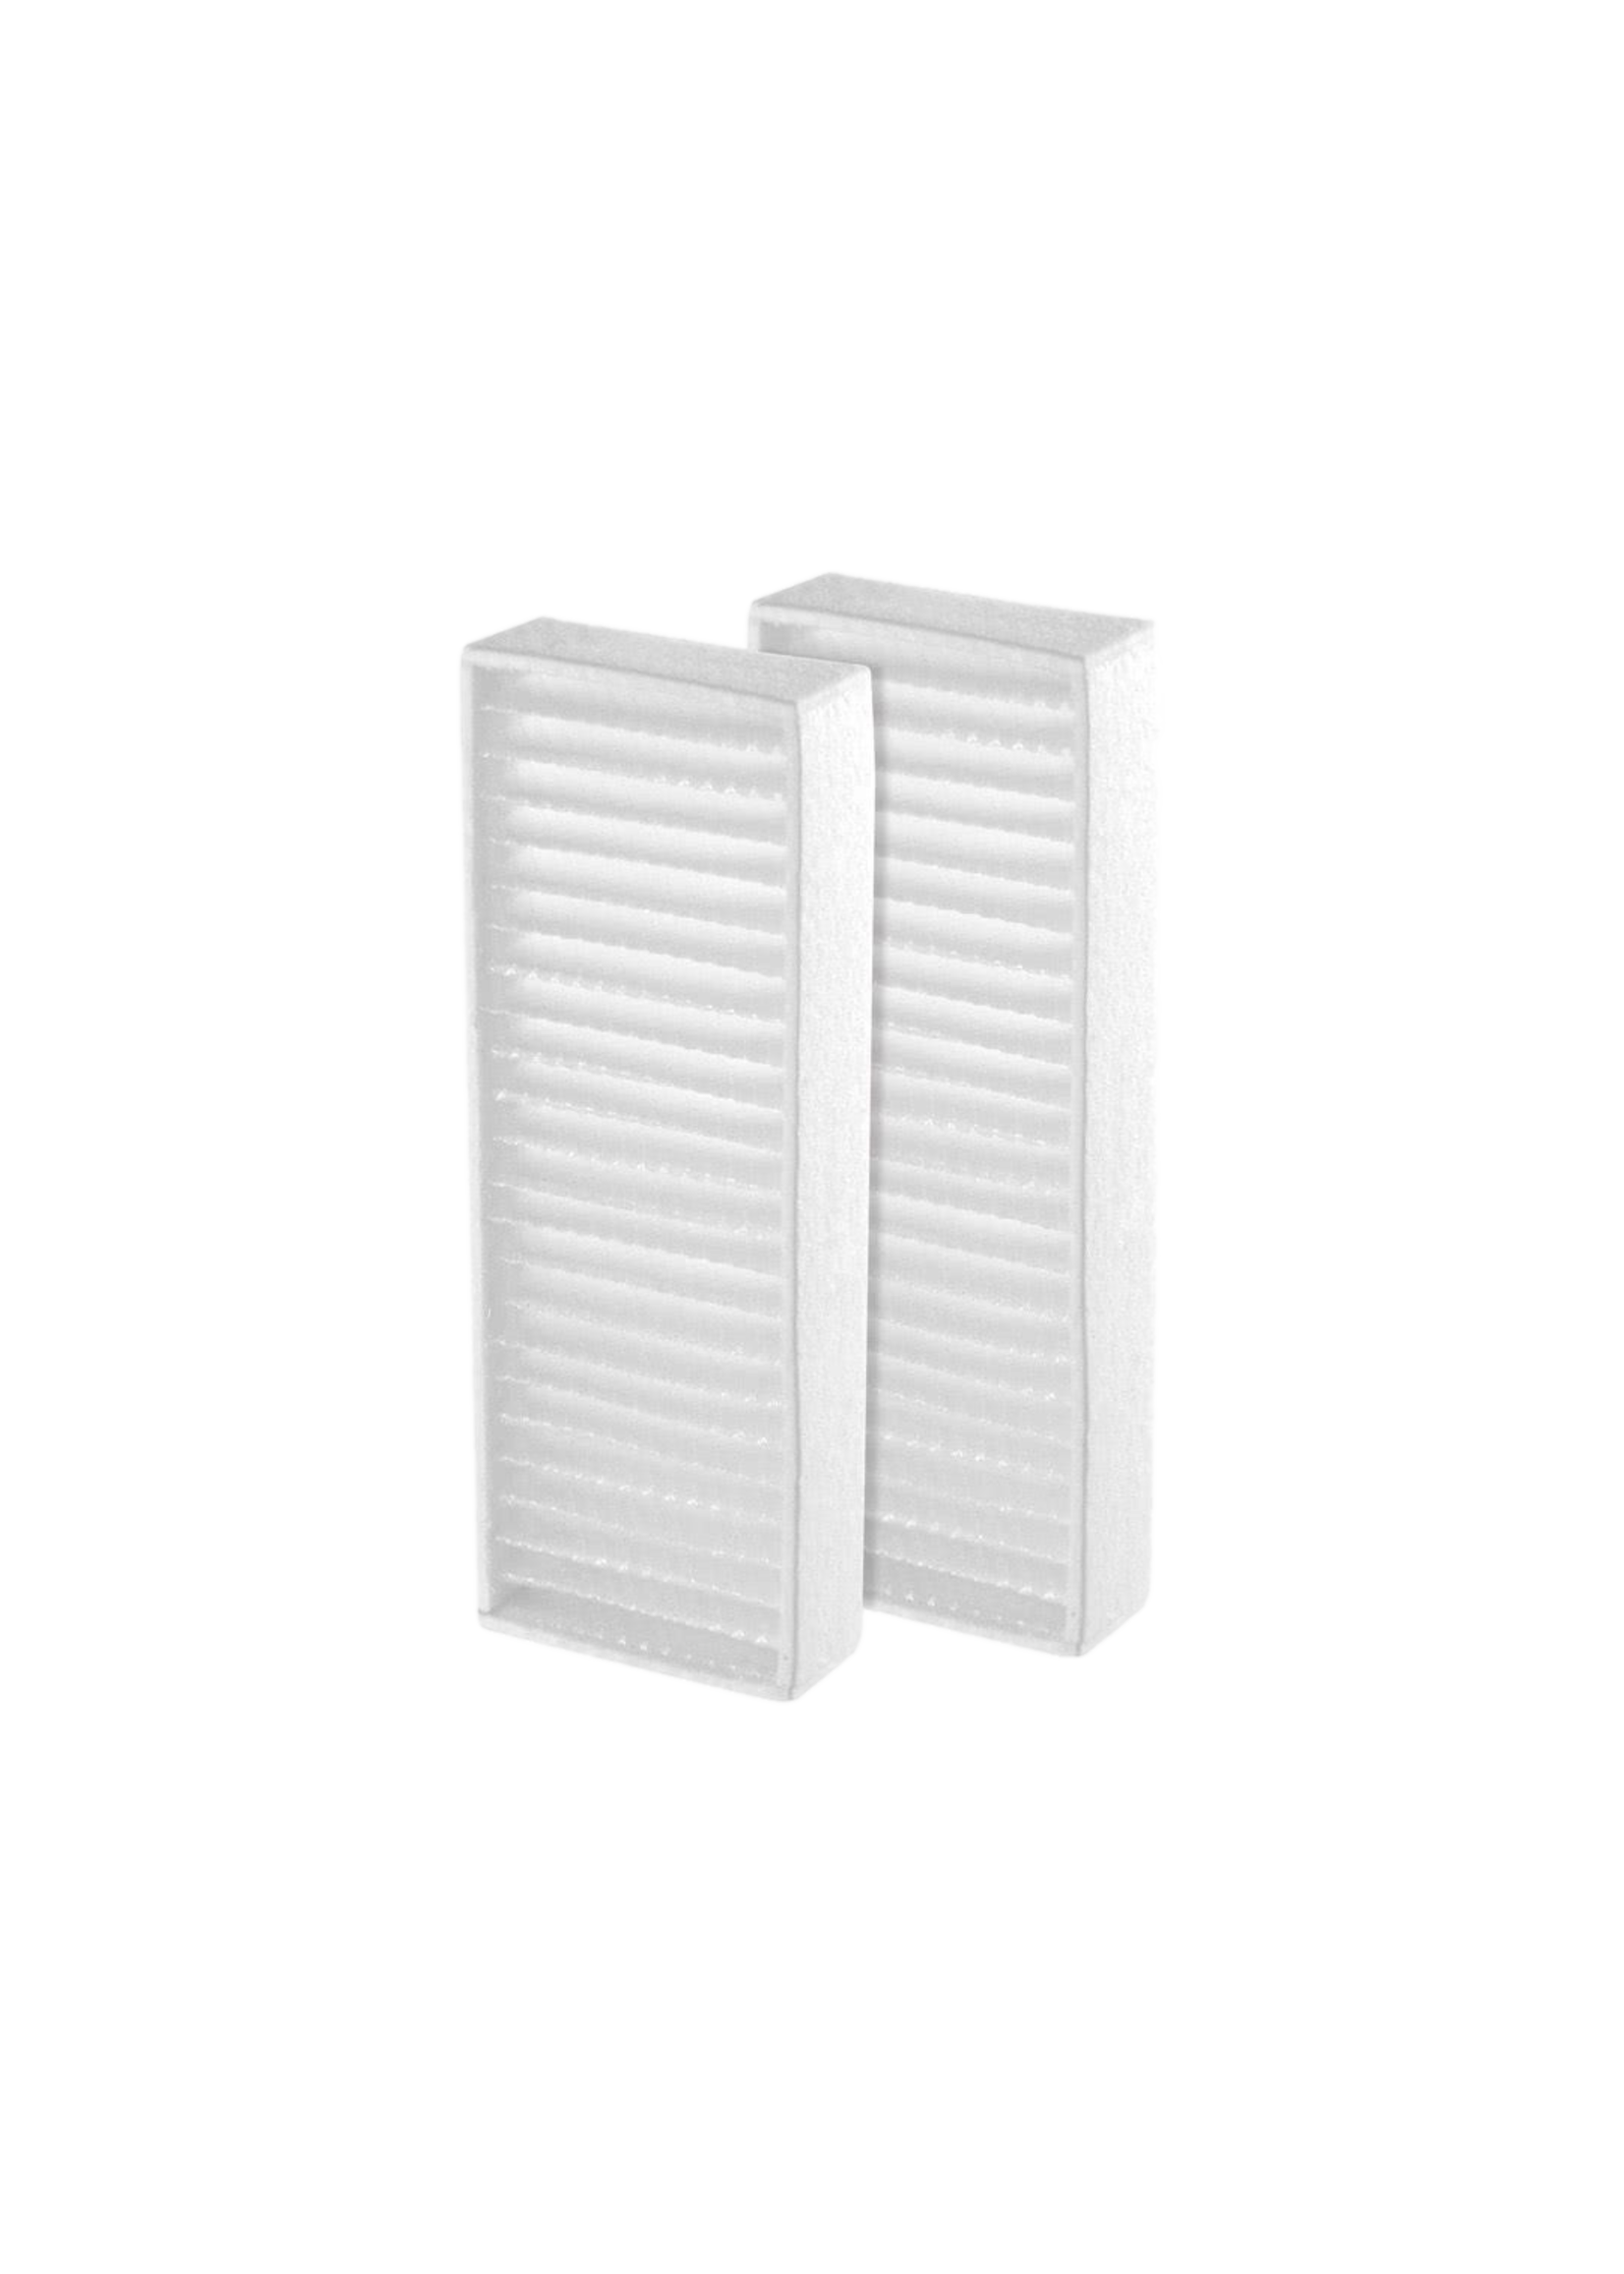 Cyclo Vac Cyclo Vac Carbon Dust Filters (2 Pack)